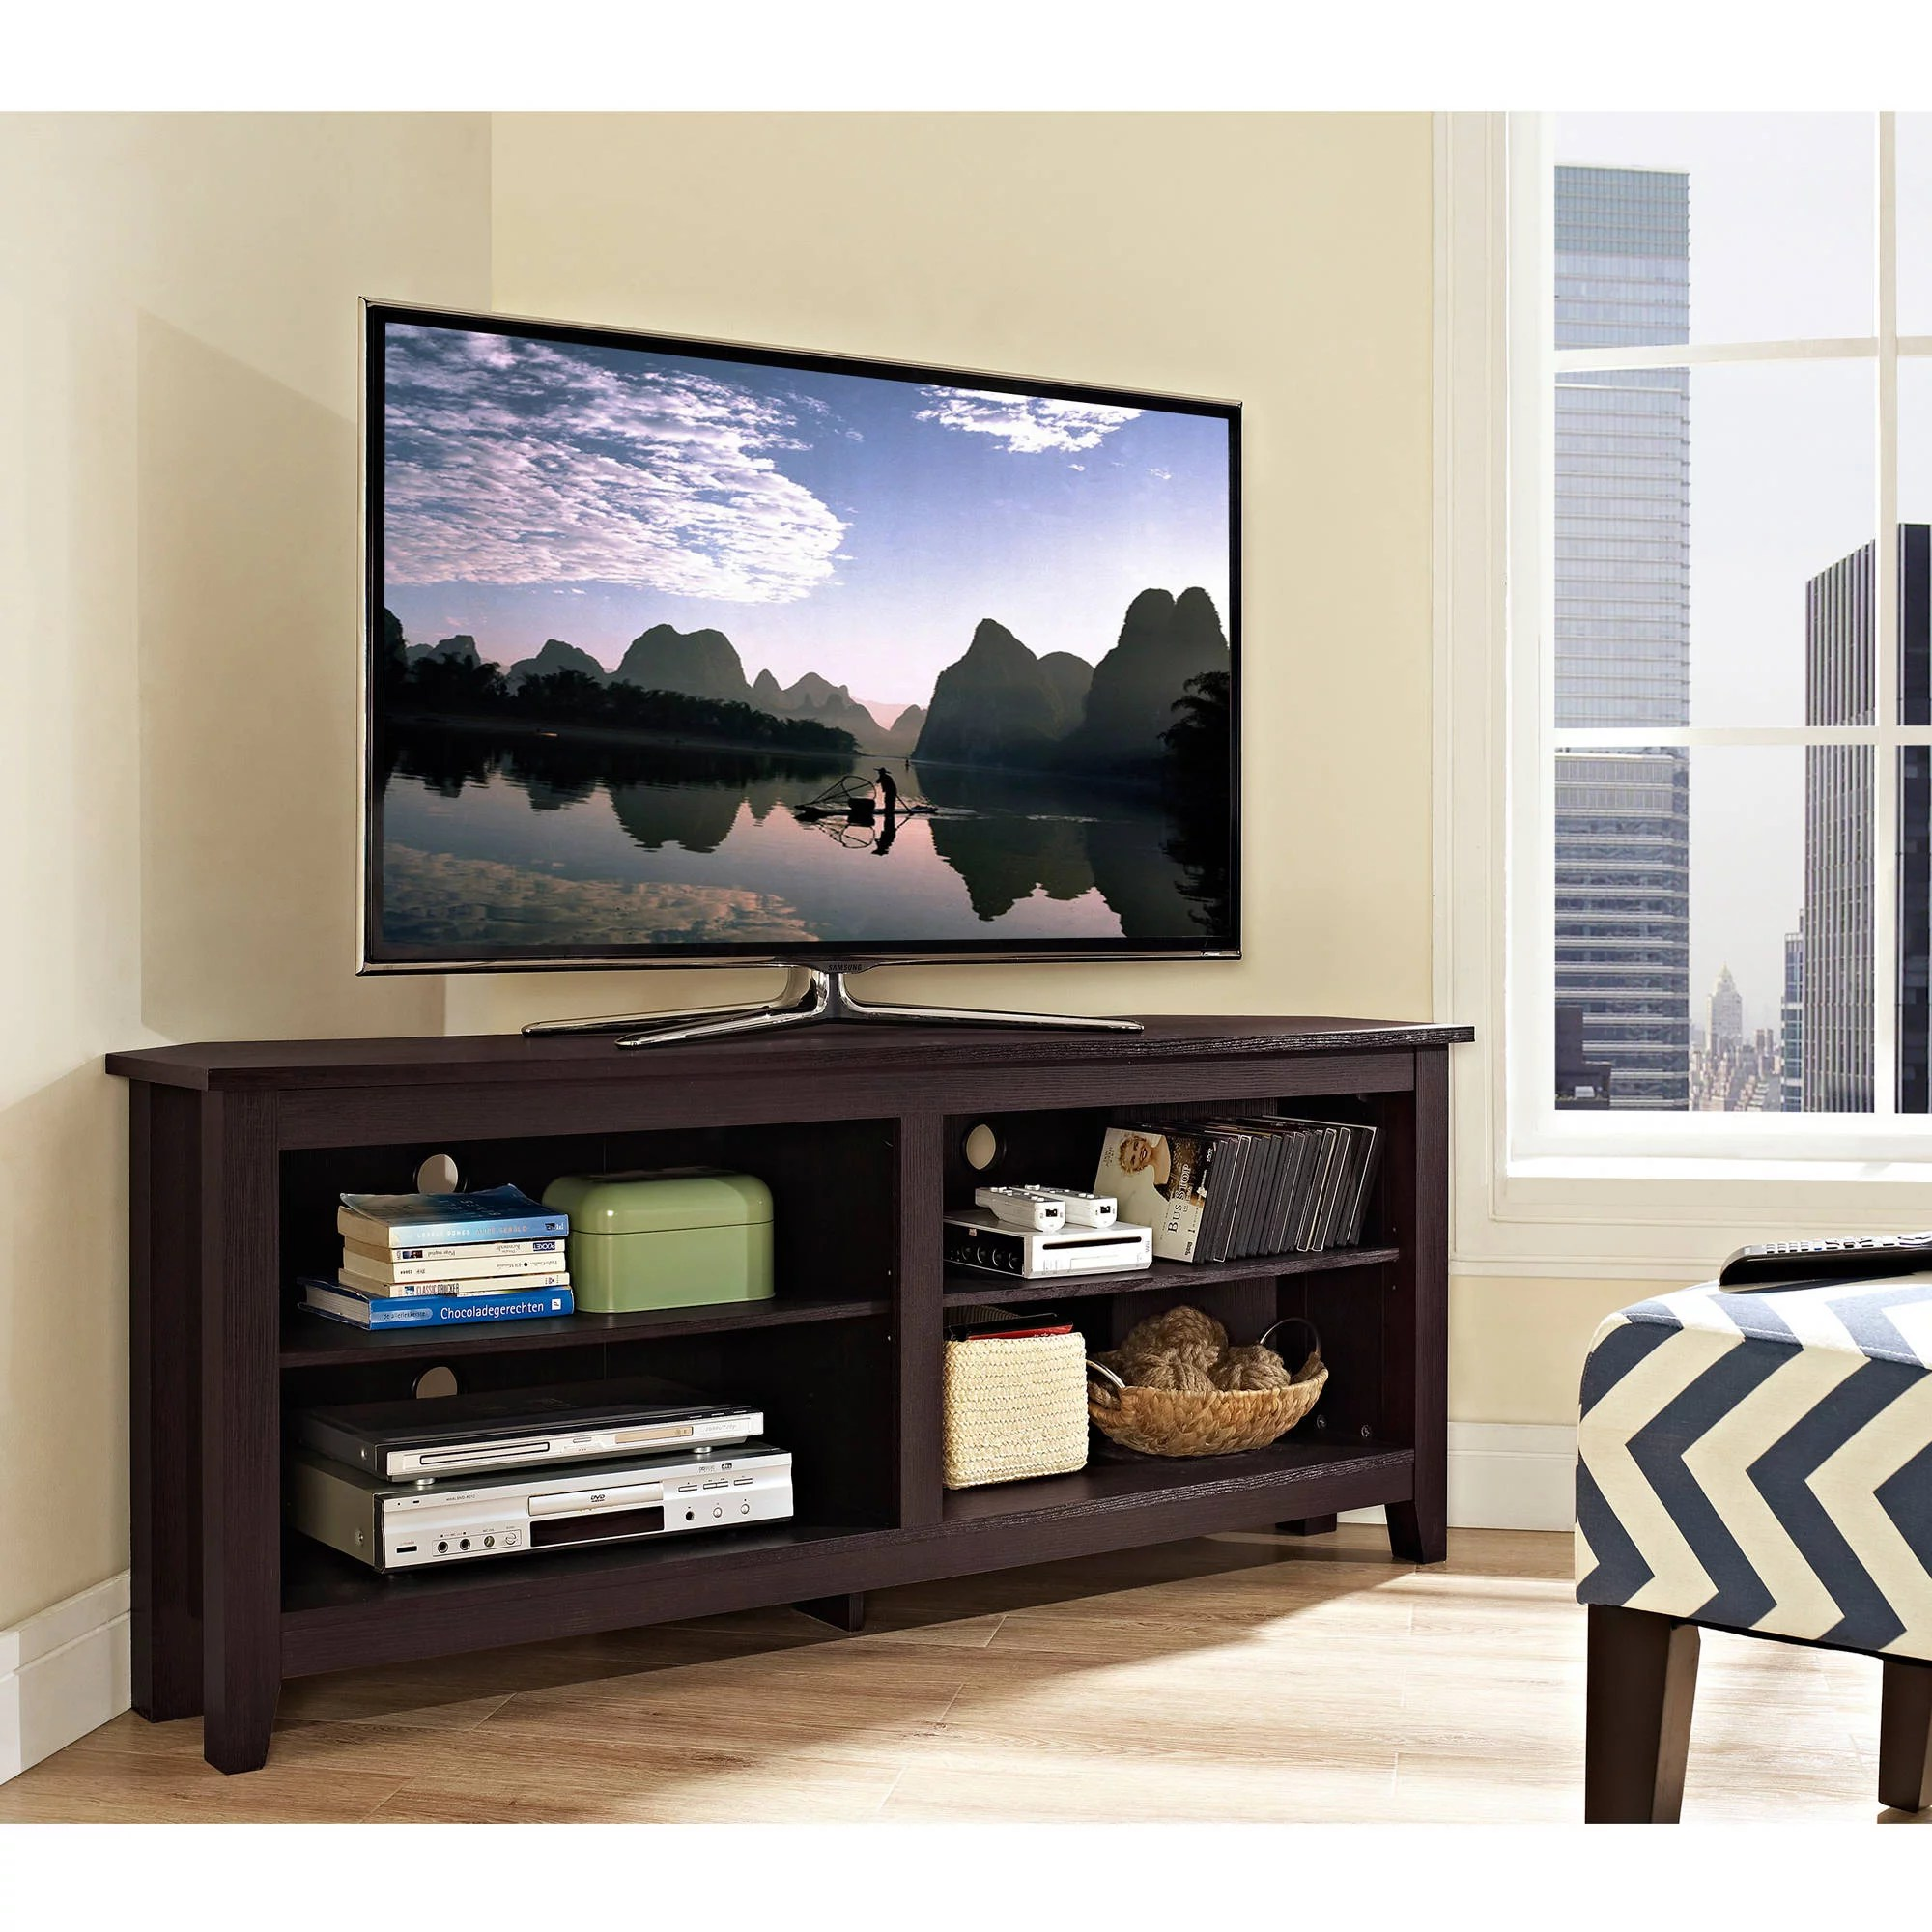 Design Tv Rack Cool Tv Rack With Tv Rack With Design Tv Rack Tv Stands Entertainment Centers Walmart